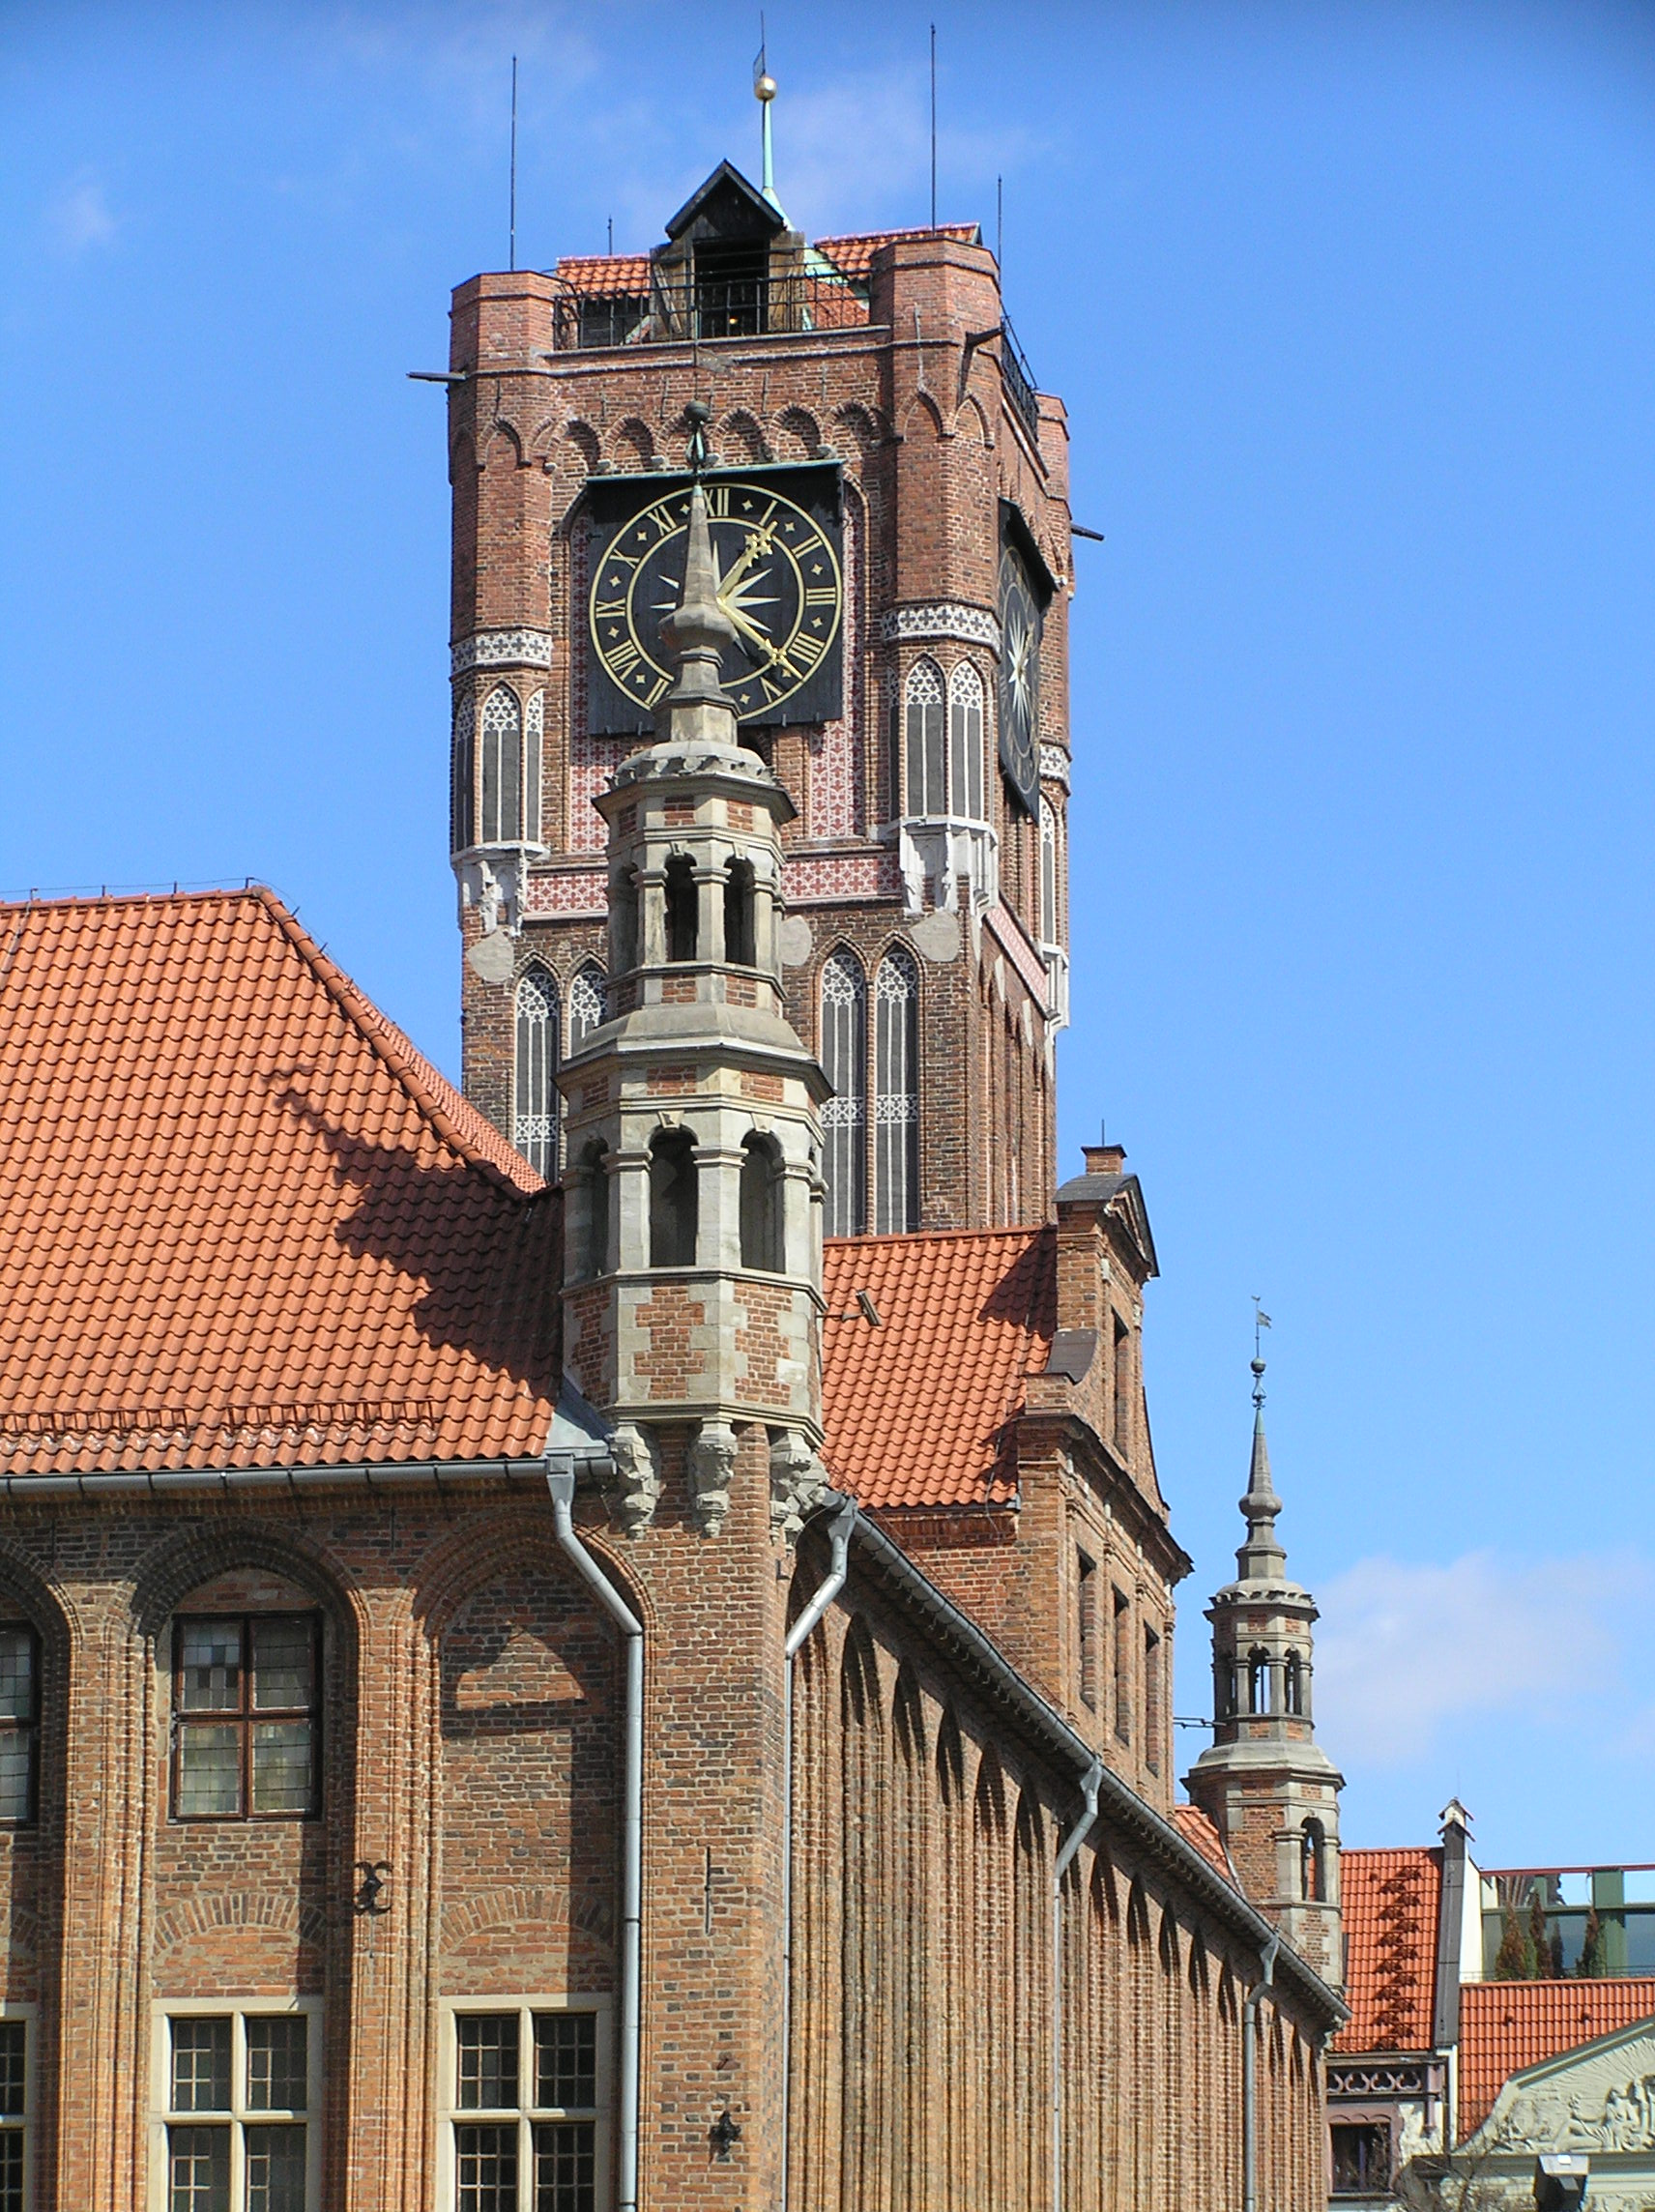 Ornate tower of town hall